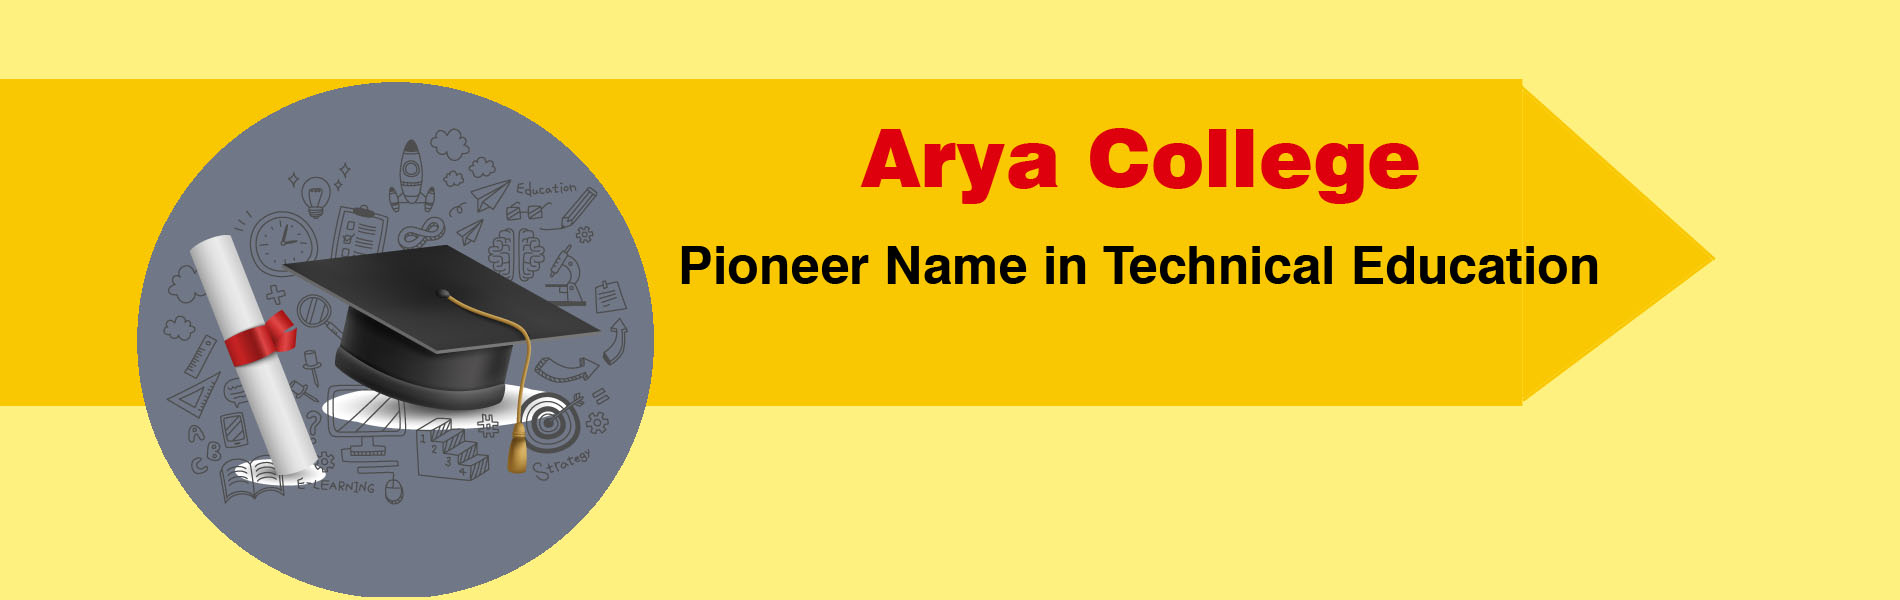 arya-college-technical education